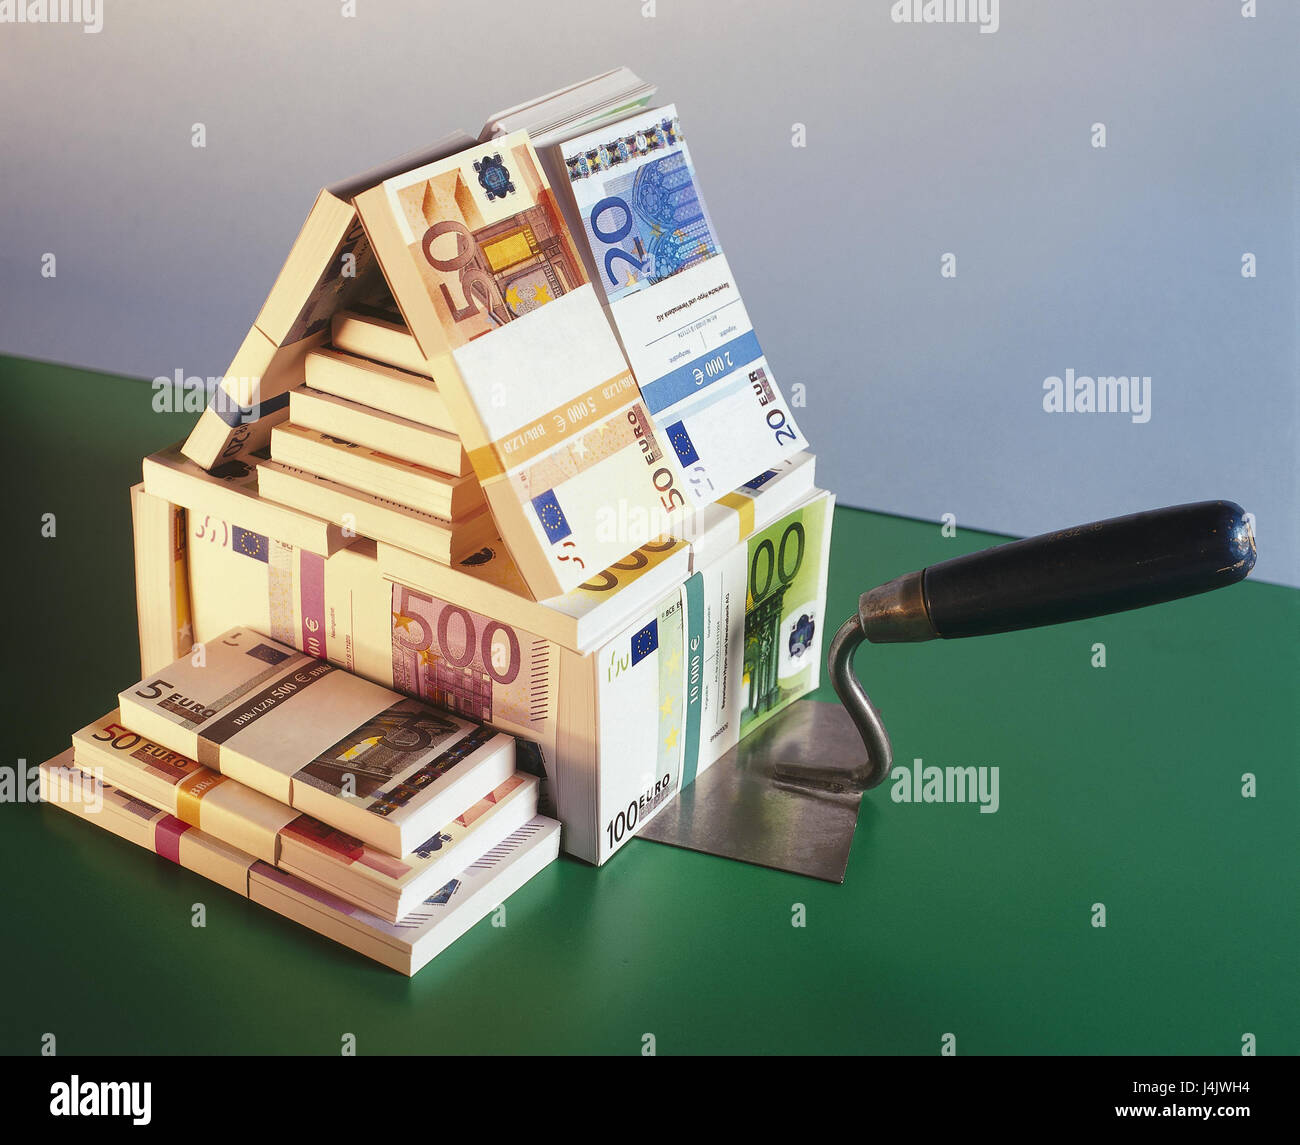 Icon building cost bank notes object photography still for Save money building a house